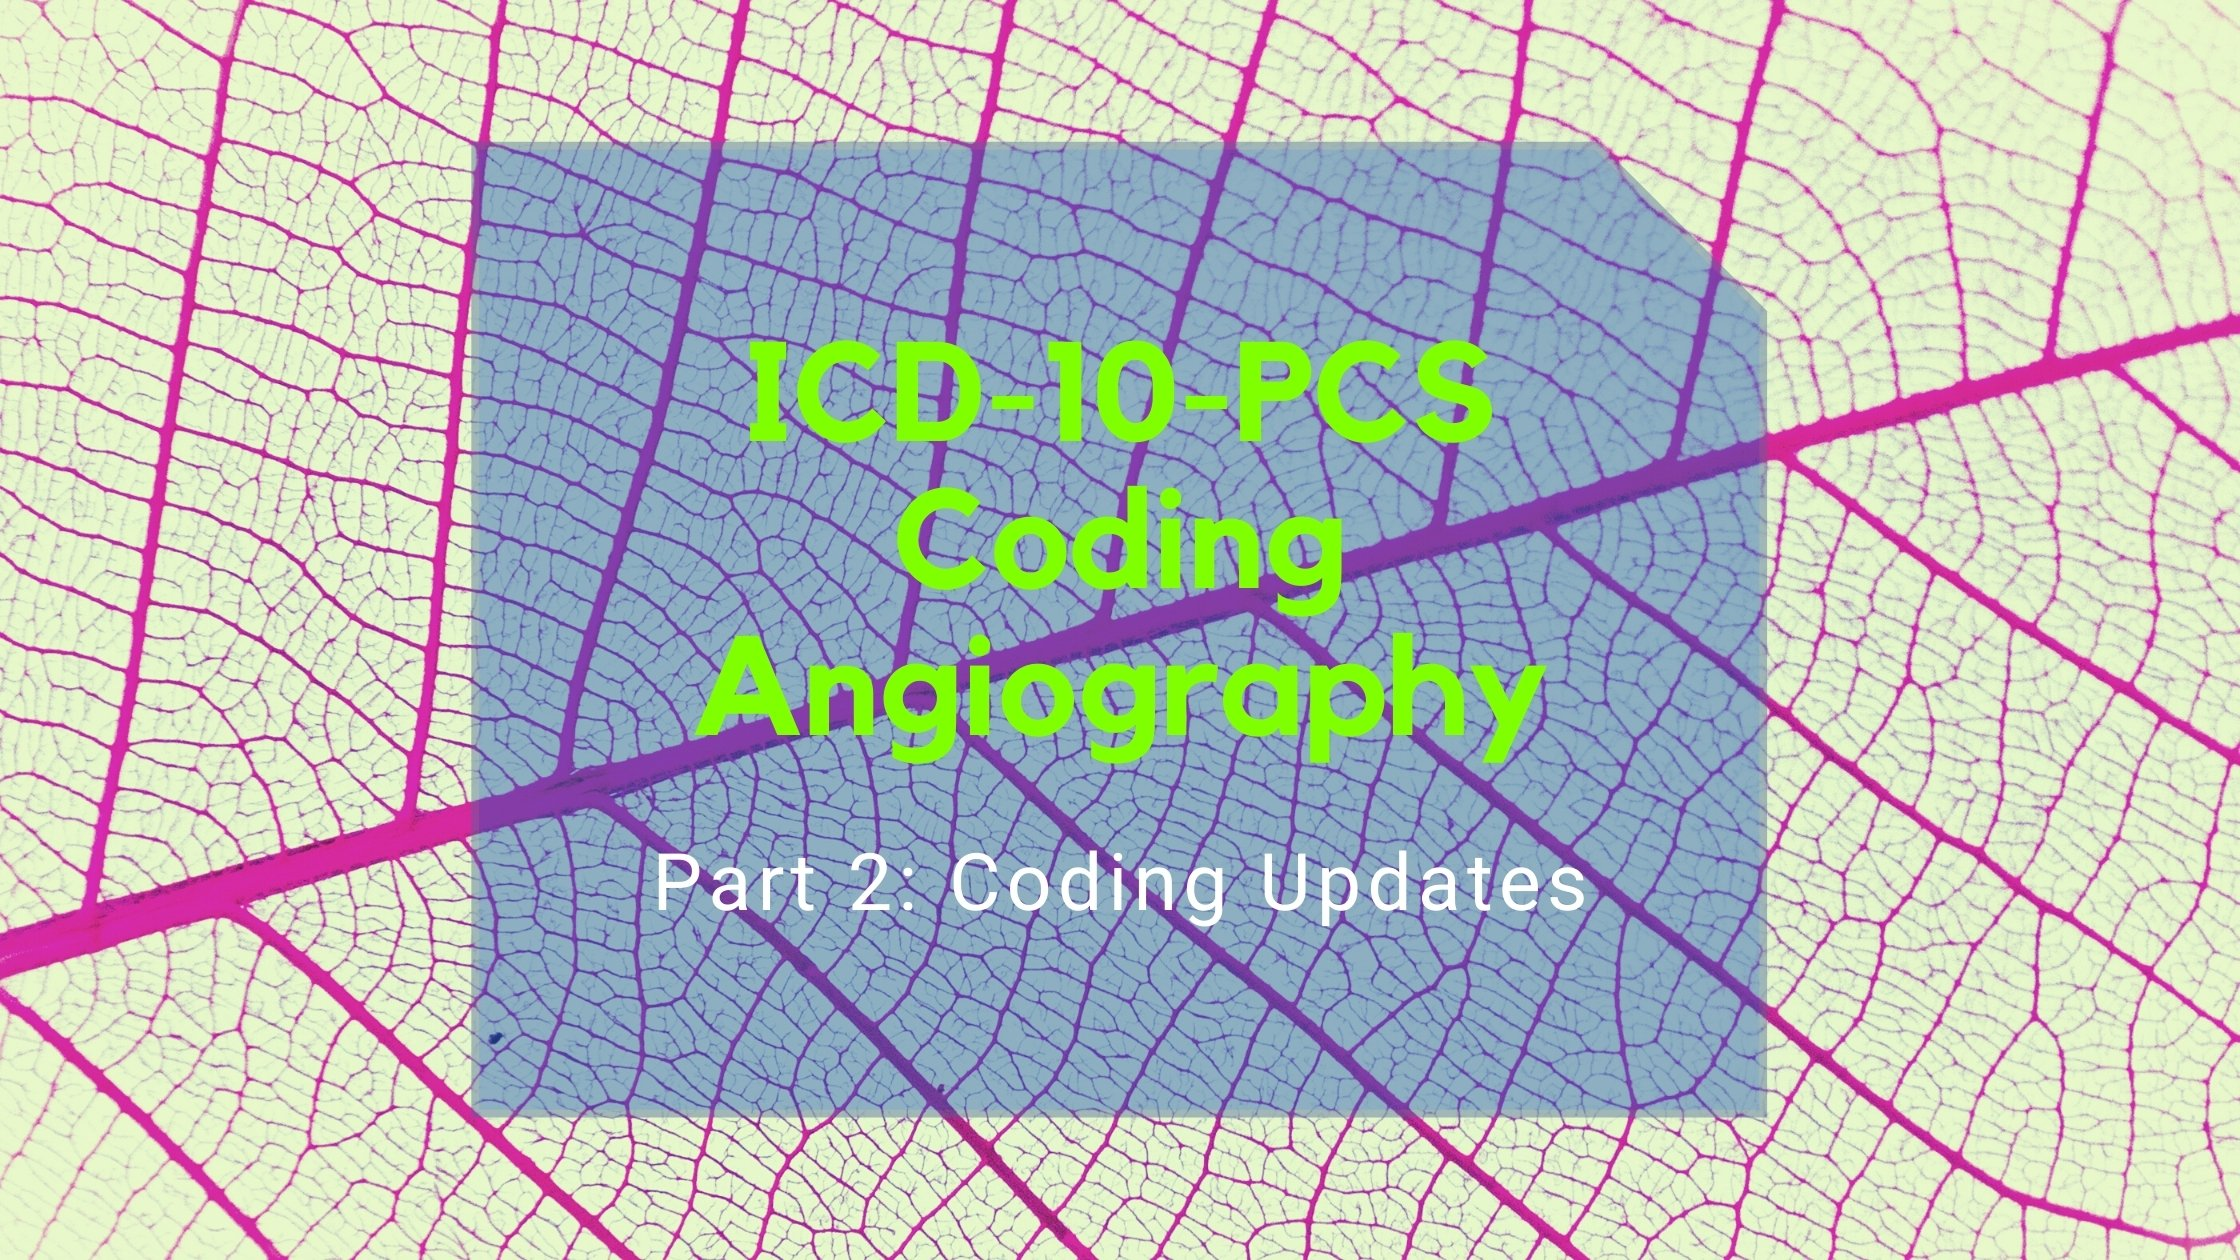 ICD-10-PCS Coding for Angiography